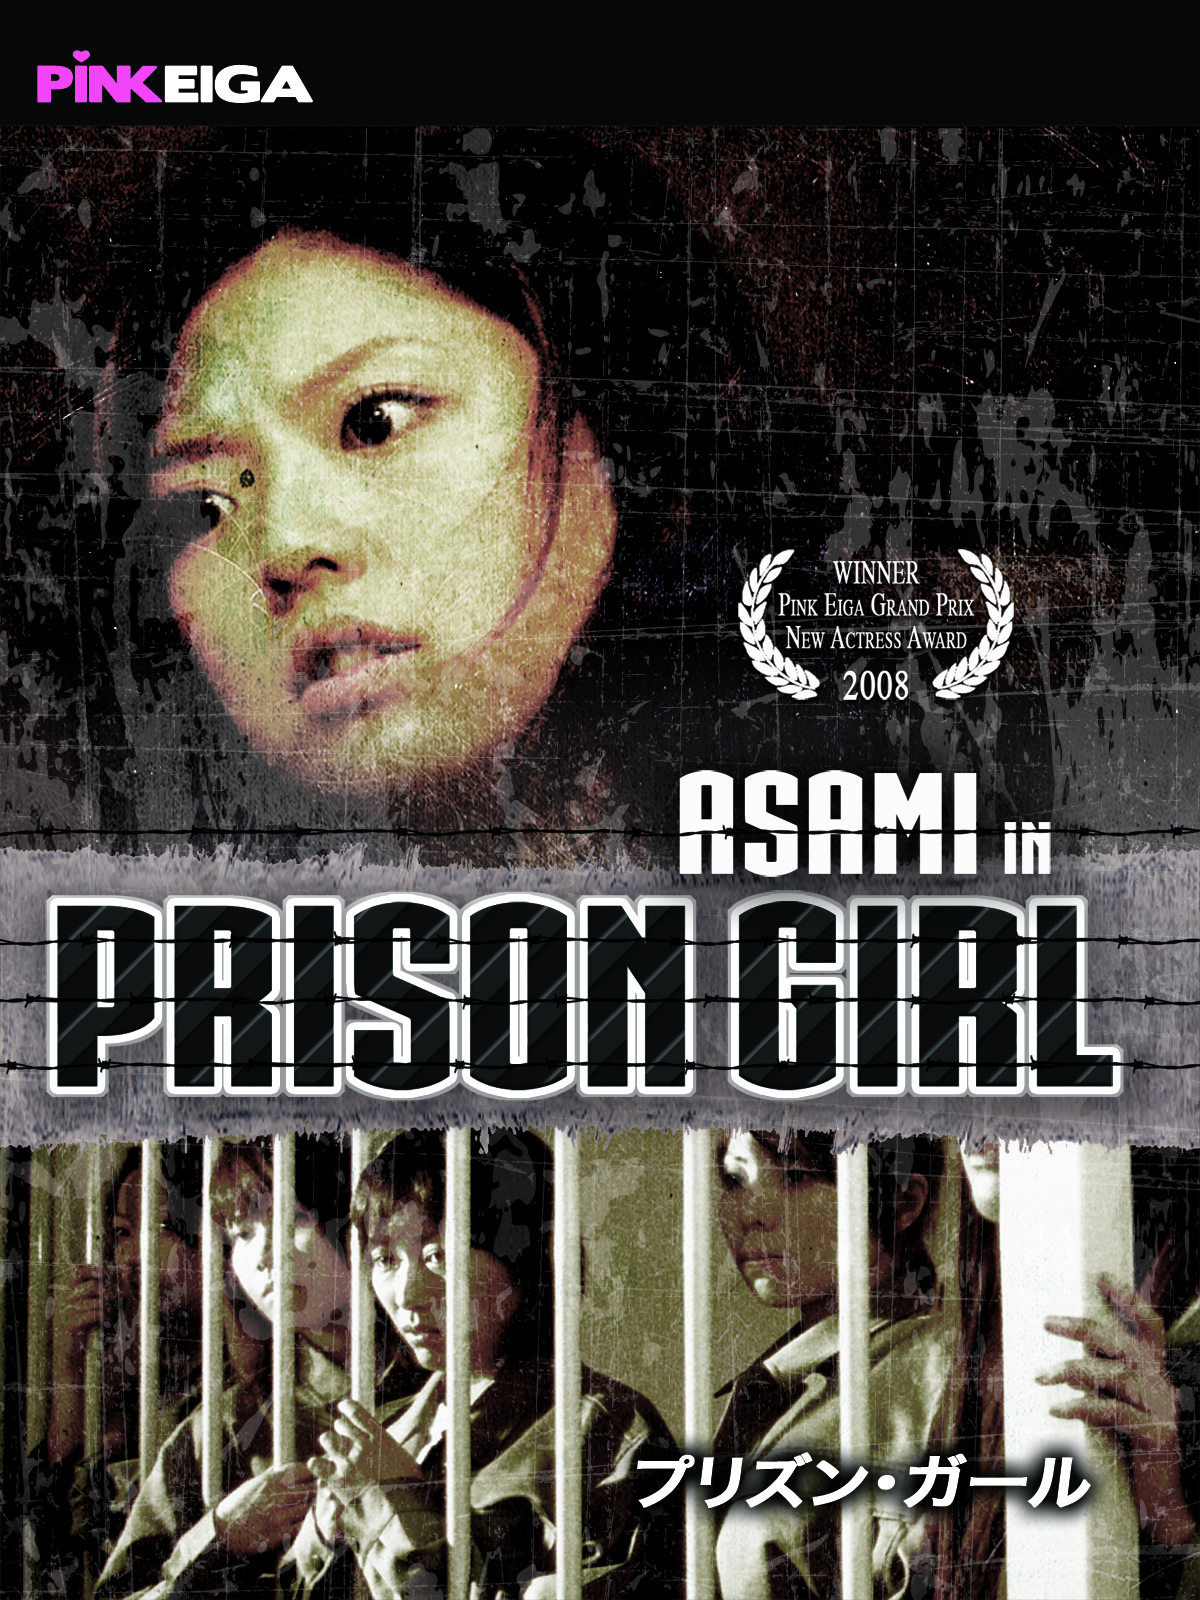 Prison Girl -HD- DOWNLOAD TO OWN